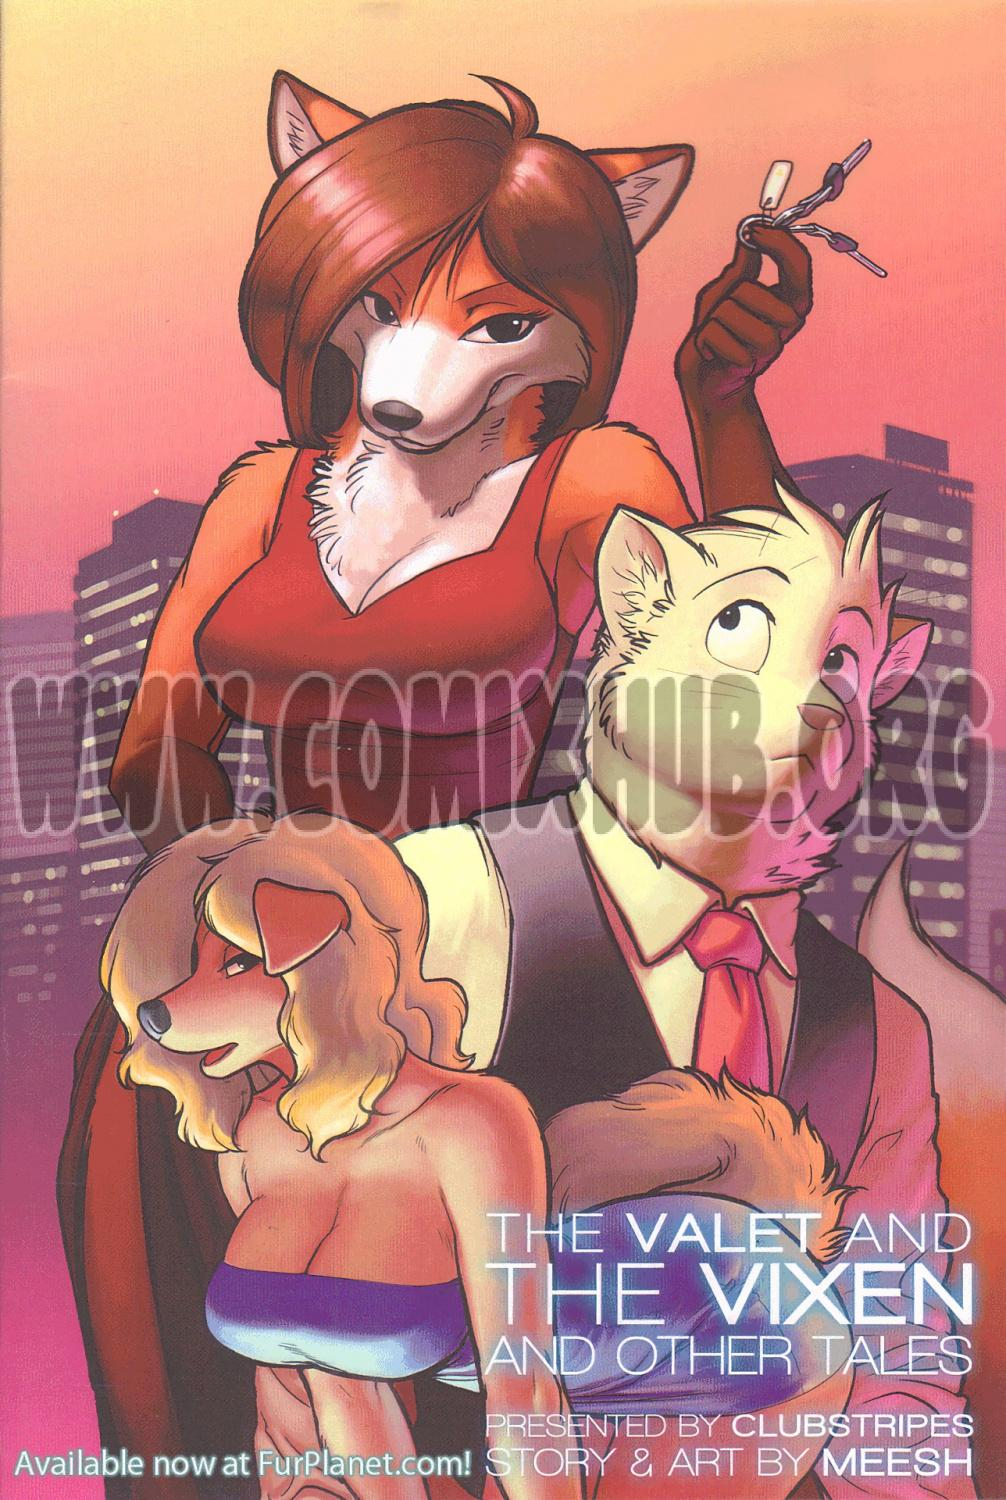 The Valet and The Vixen and Other Tales Oral sex, Blowjob, Creampie, Cum Swallow, cunnilingus, Deepthroat, Furry, Masturbation, Straight, Titfuck